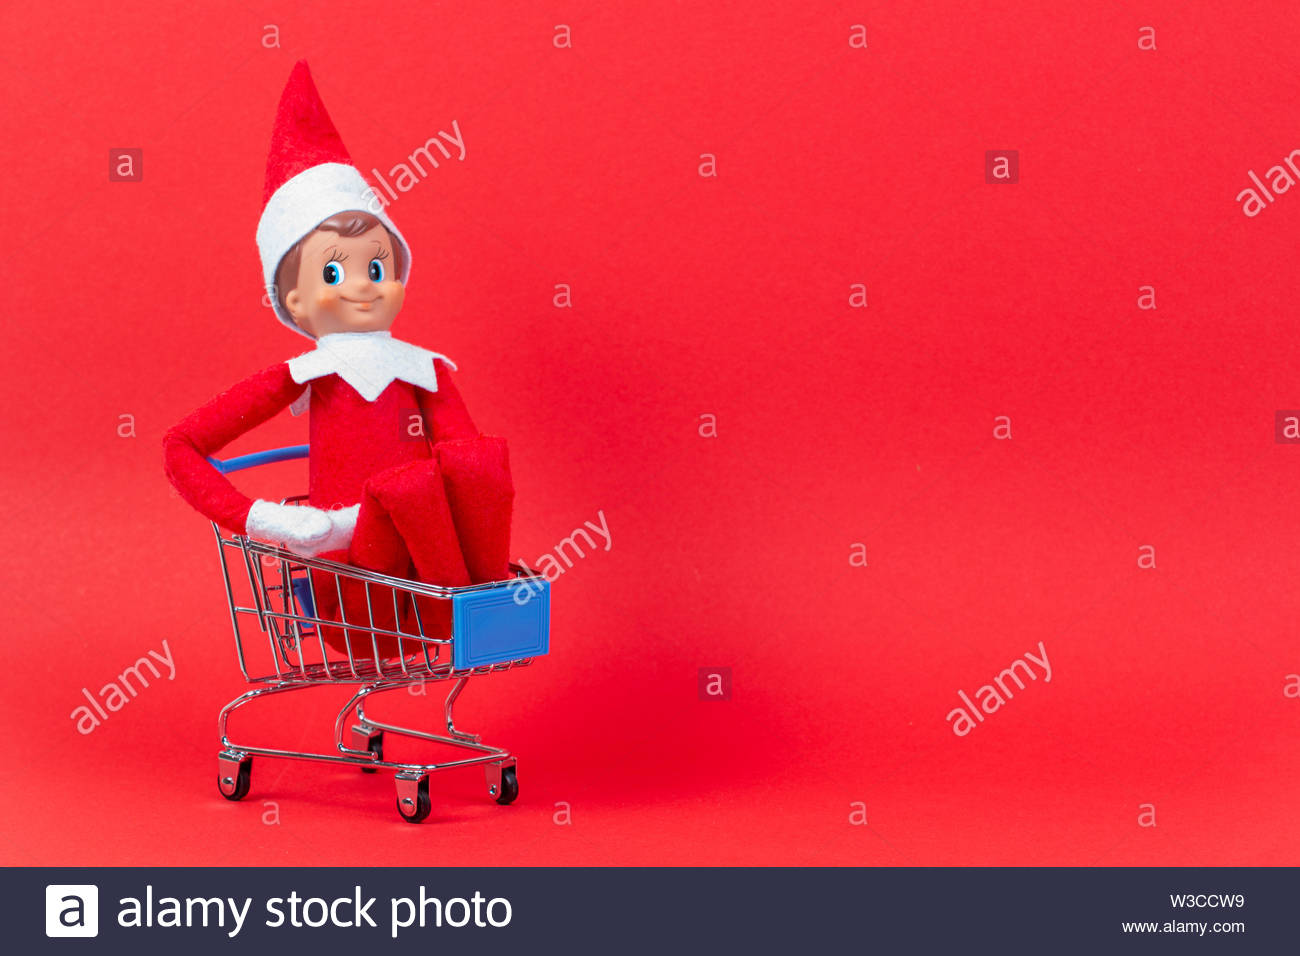 Christmas toy elf on shelf sitting in mini shopping cart on red background - Stock Image